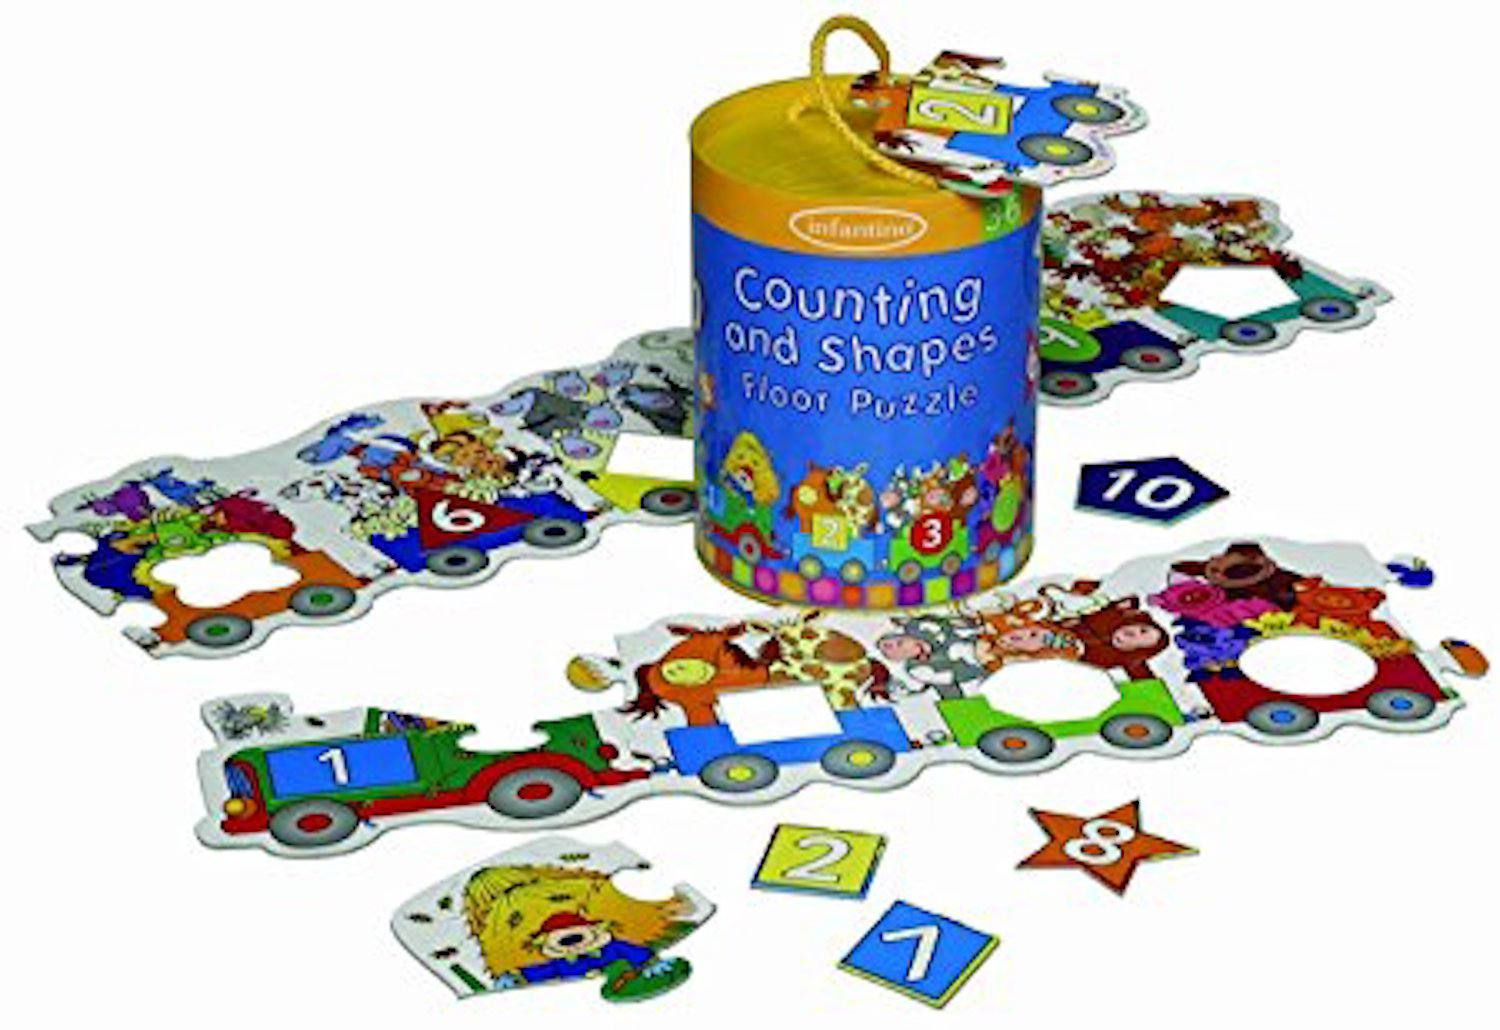 Infantino Counting & Shapes Floor Puzzle (Discontinued by Manufacturer)